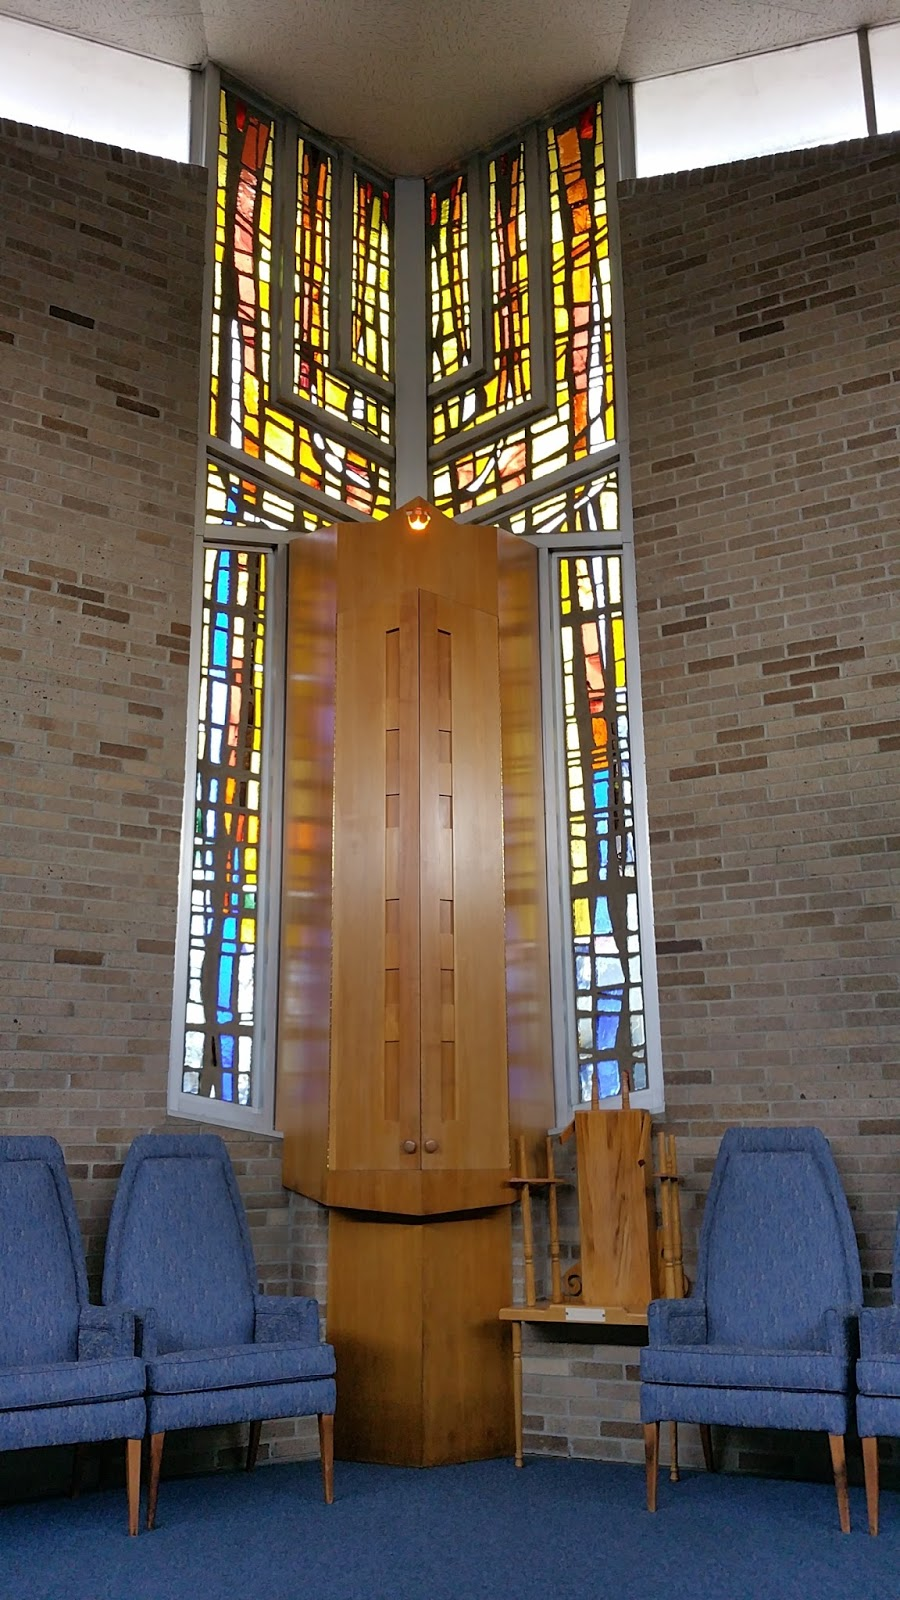 Binghamton NY Temple Concord Sanctuary Wing 1964 Stained Glass By Jean Jacques Duval Photo Samuel D Gruber 2015